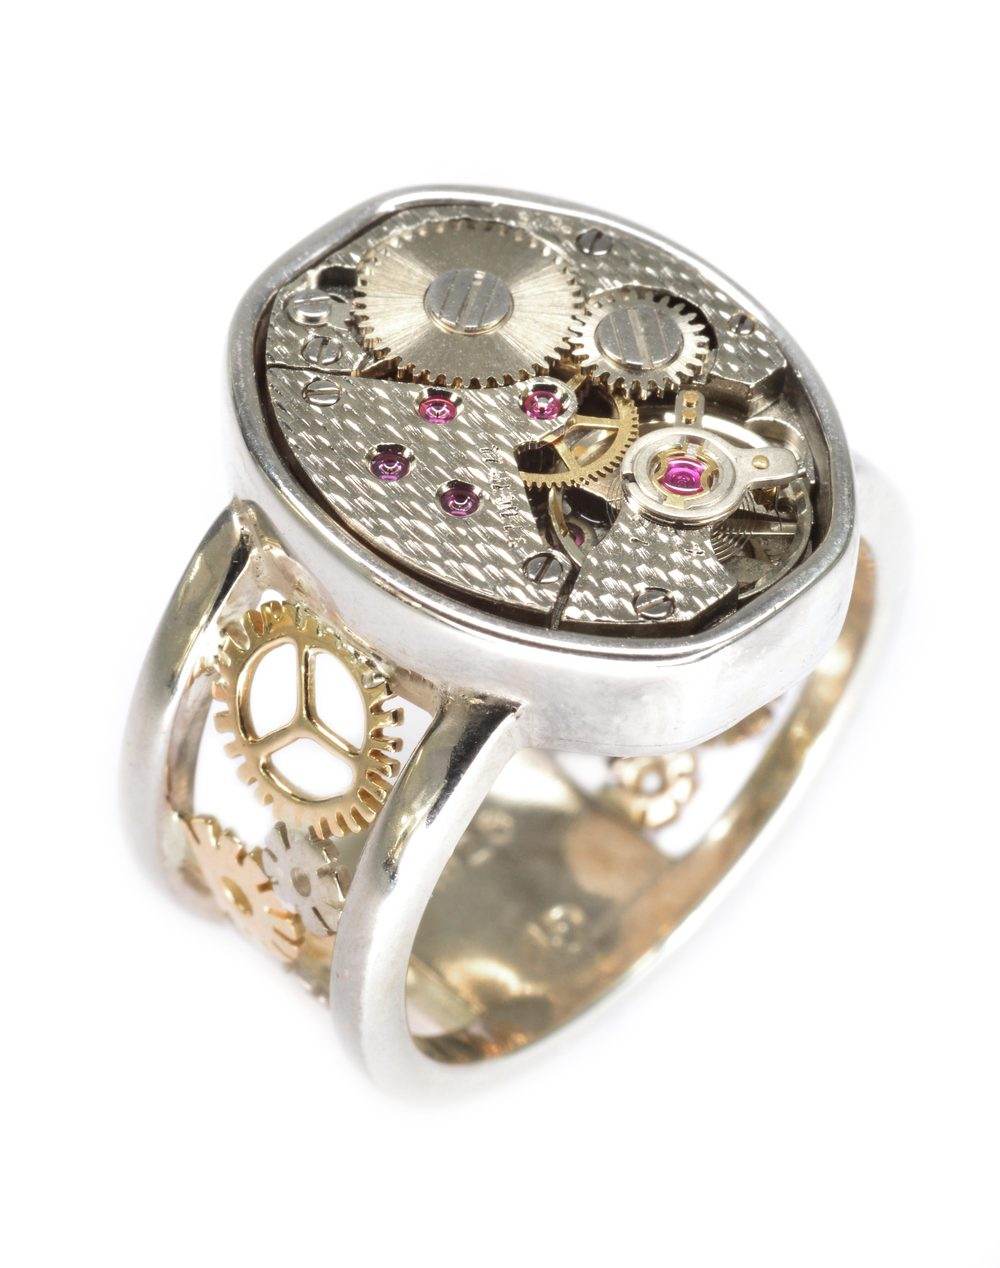 sterling silver and 14k gold ring with vintage watch movement, designed by Darren Demarco.